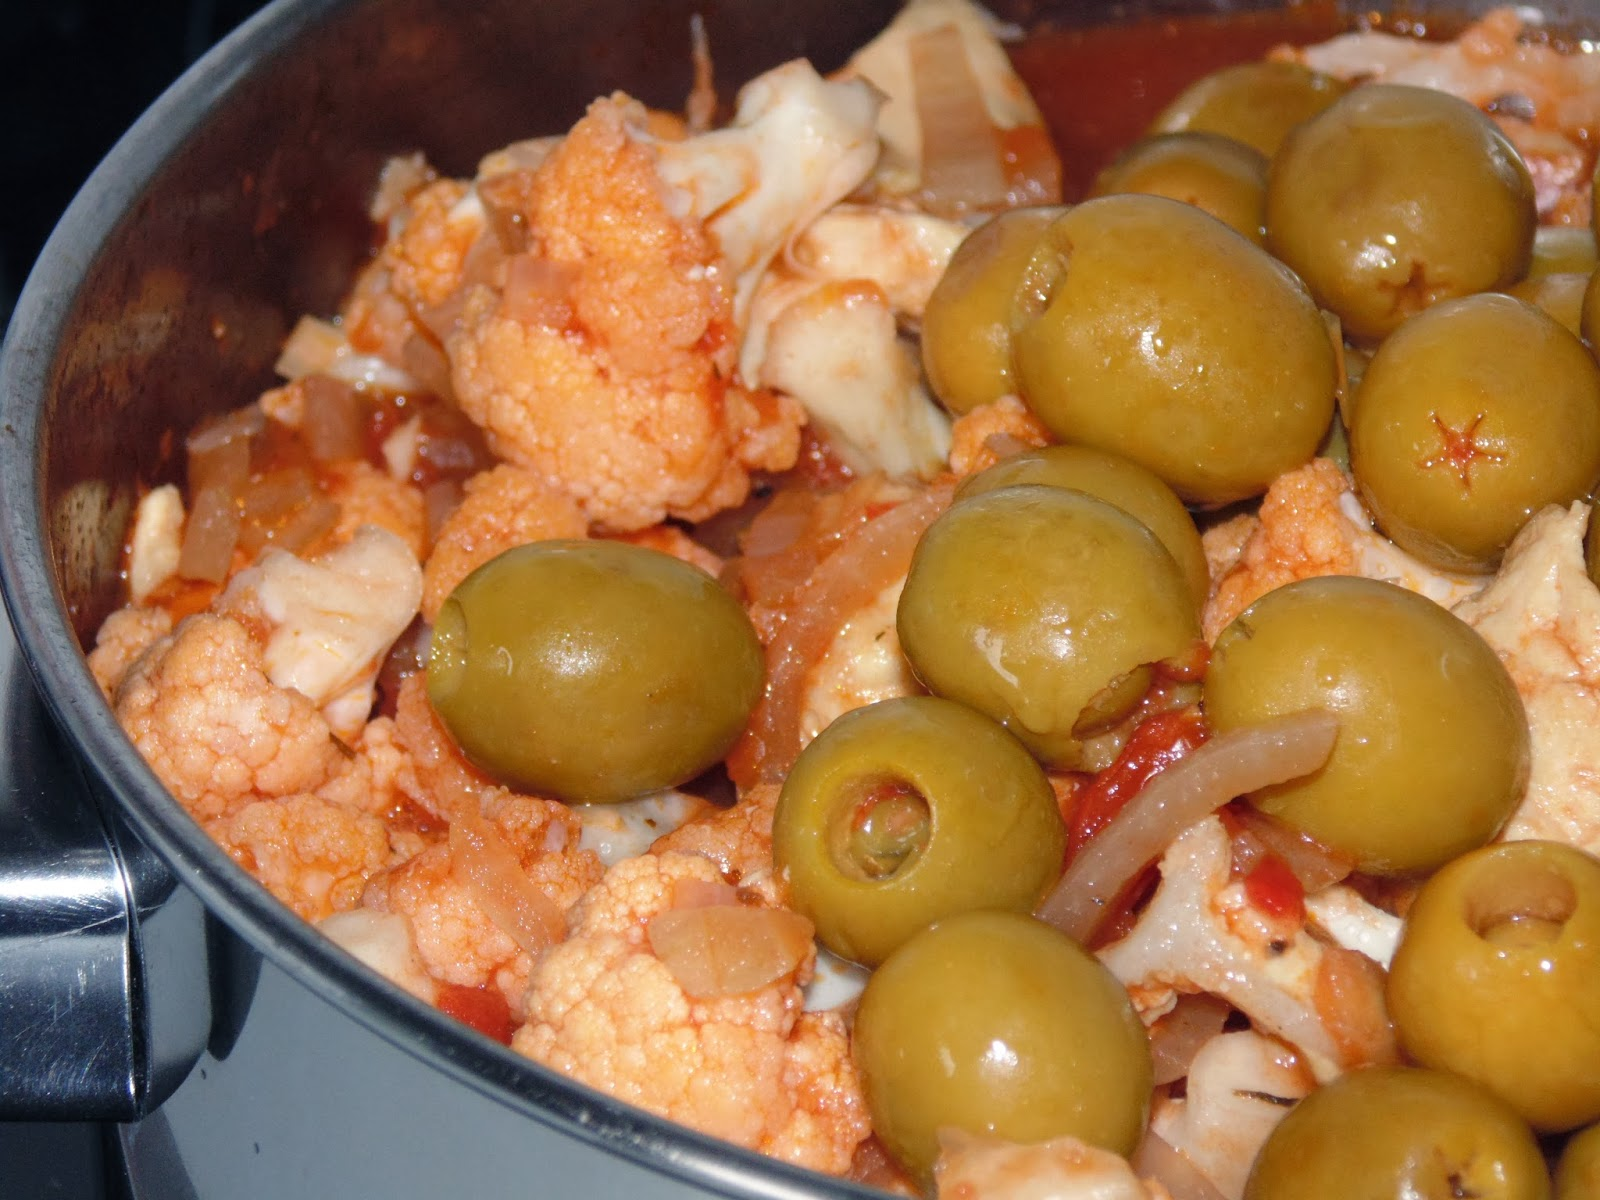 Greek+Chicken+Stew+with+Cauliflower+and+Olives,+recipe+(1).JPG